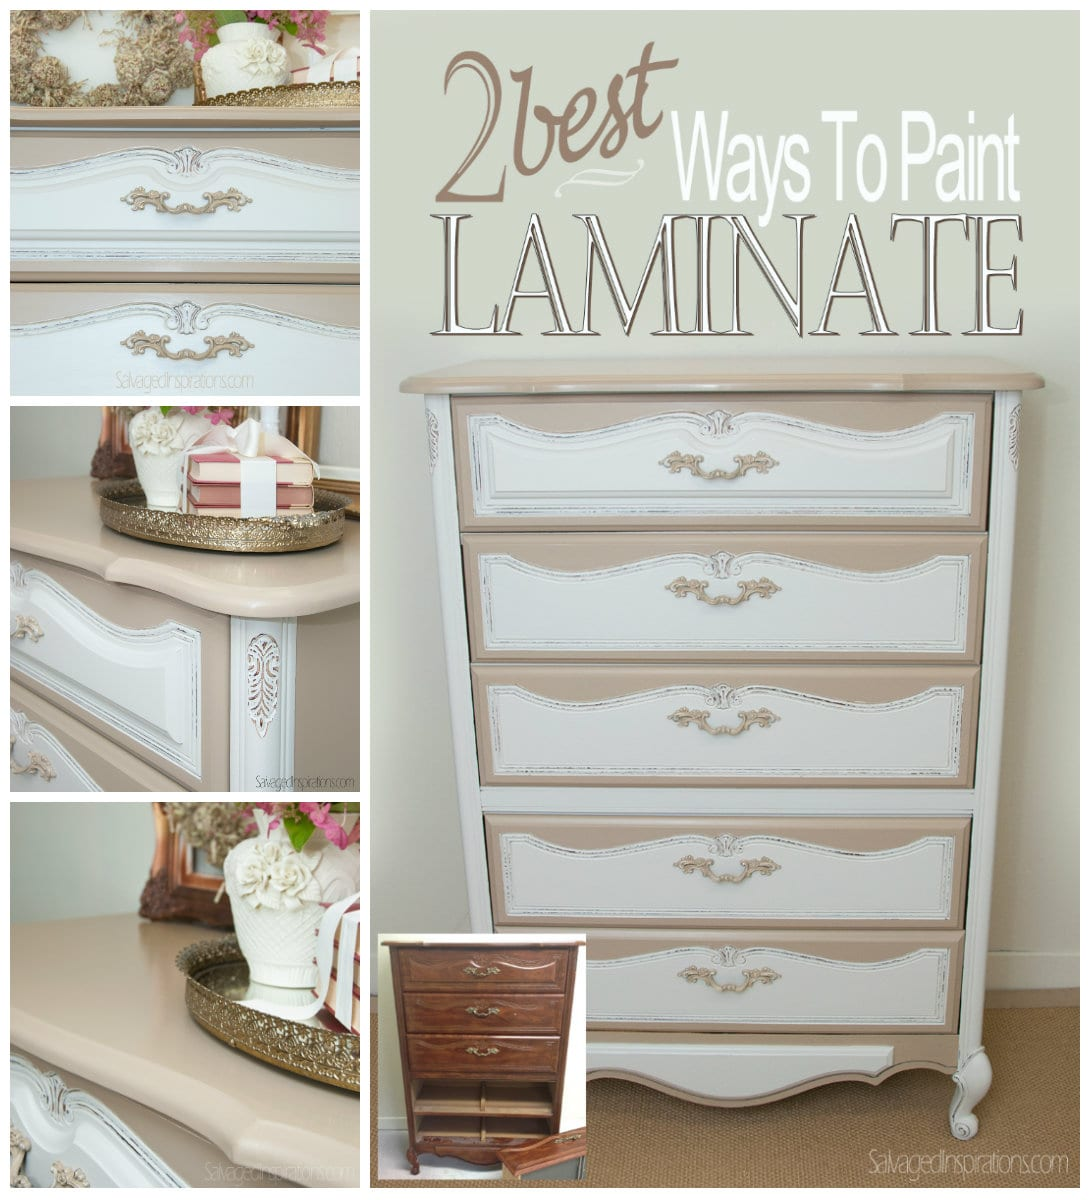 How To Paint Furniture 2 Best Ways To Paint Laminate Furniture  Salvaged Inspirations